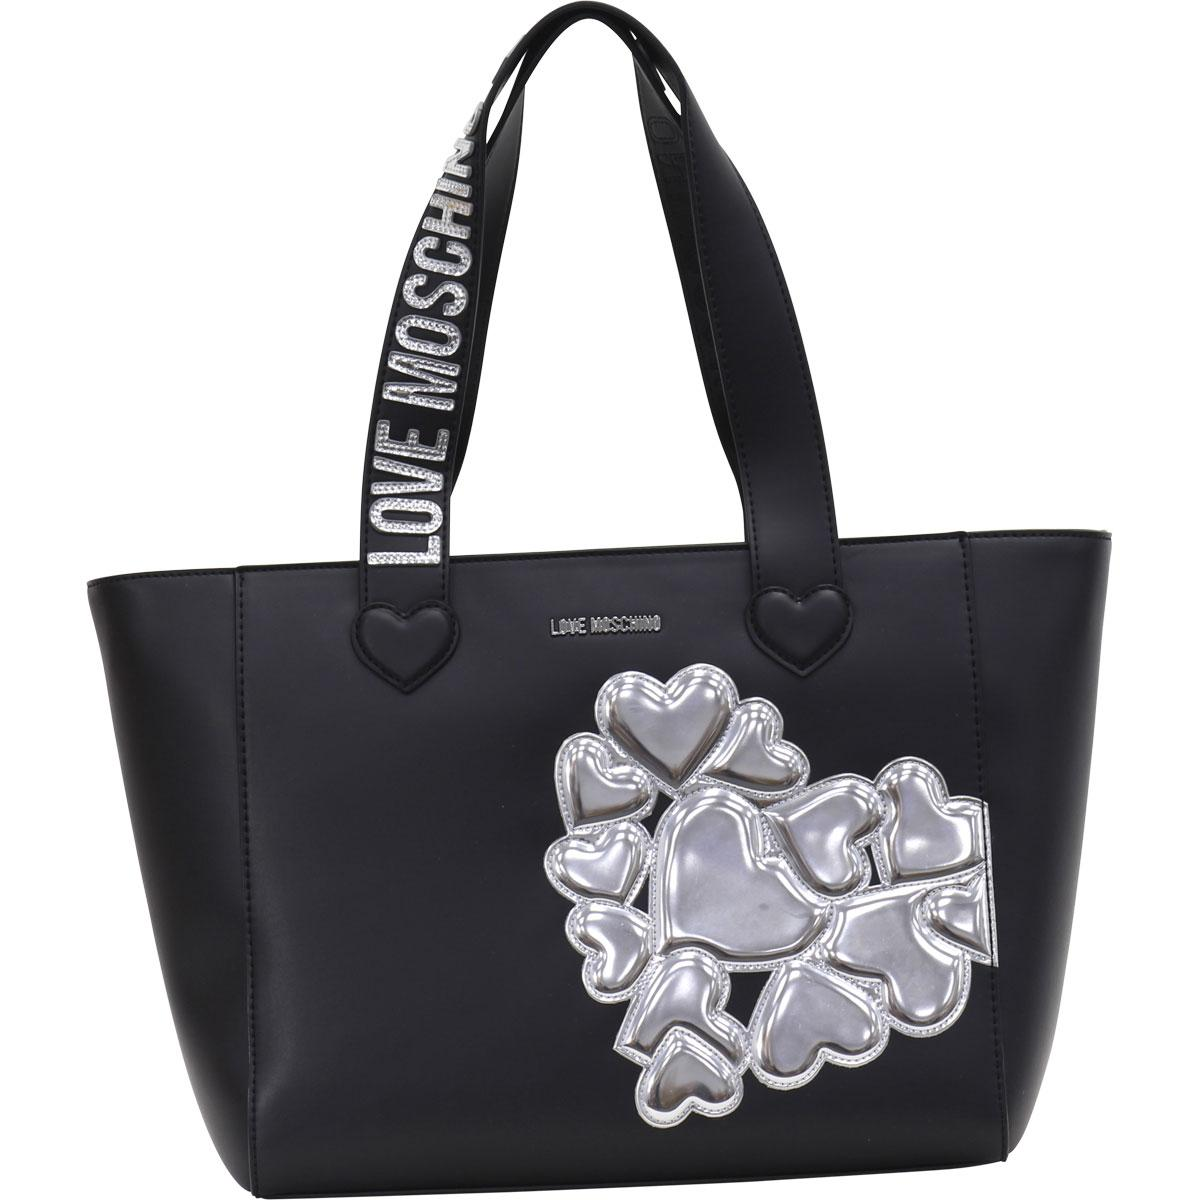 035411825c3 Love Moschino Women s Embroidered Hearts Cluster Tote Handbag